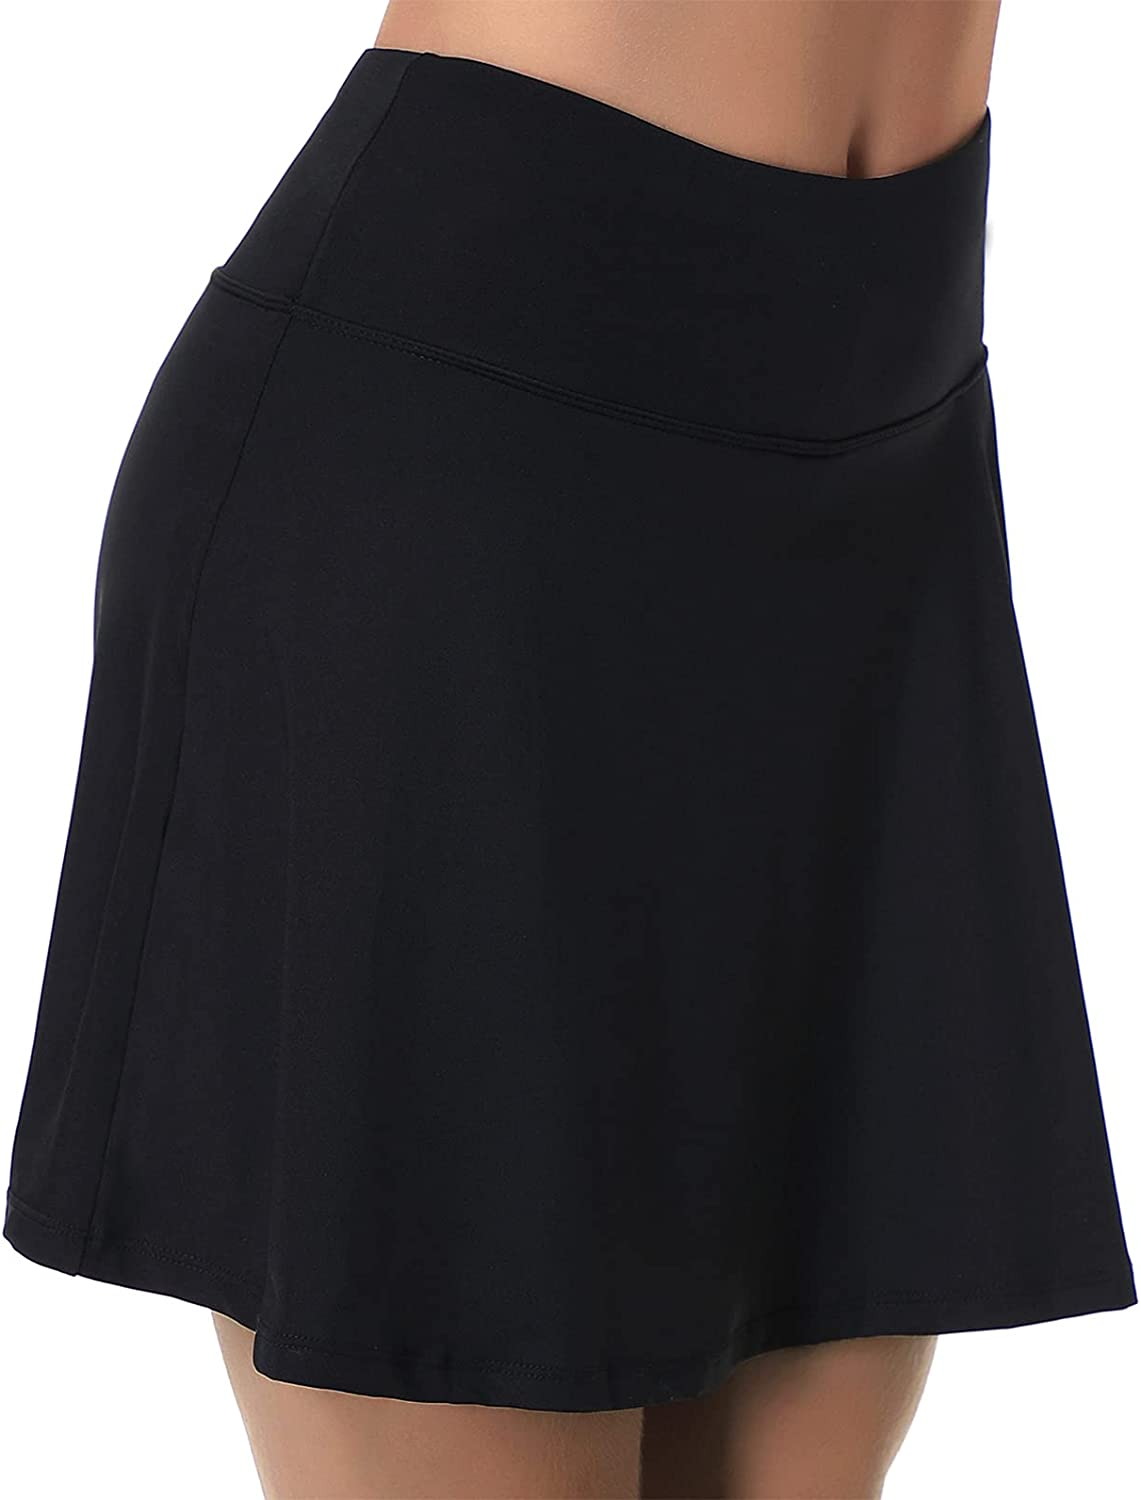 Sale item Xioker Women Skorts Skirts for Golf with Tennis half Clothing